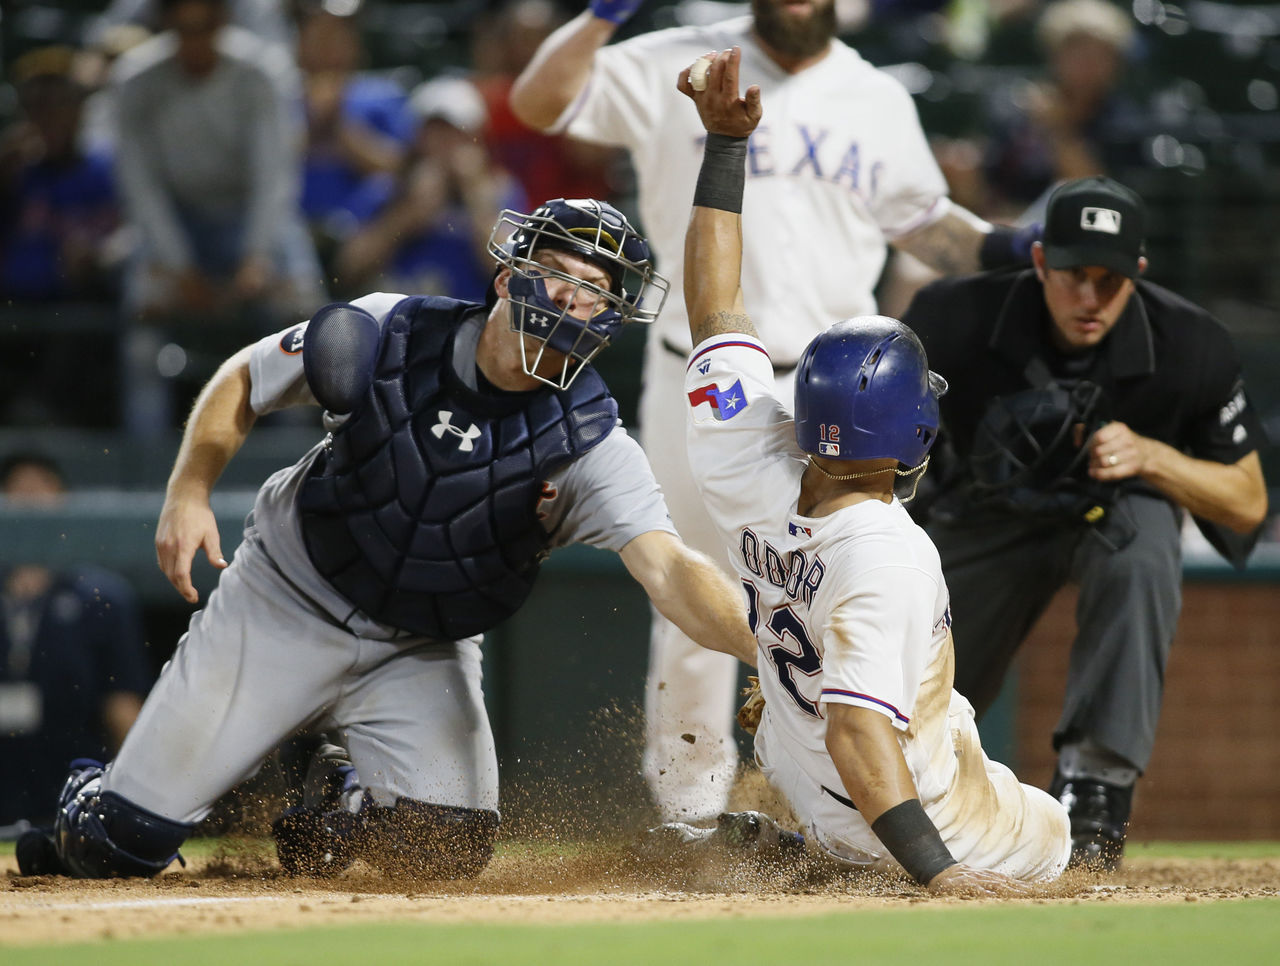 Cropped 2017 08 16t035659z 2076514944 nocid rtrmadp 3 mlb detroit tigers at texas rangers